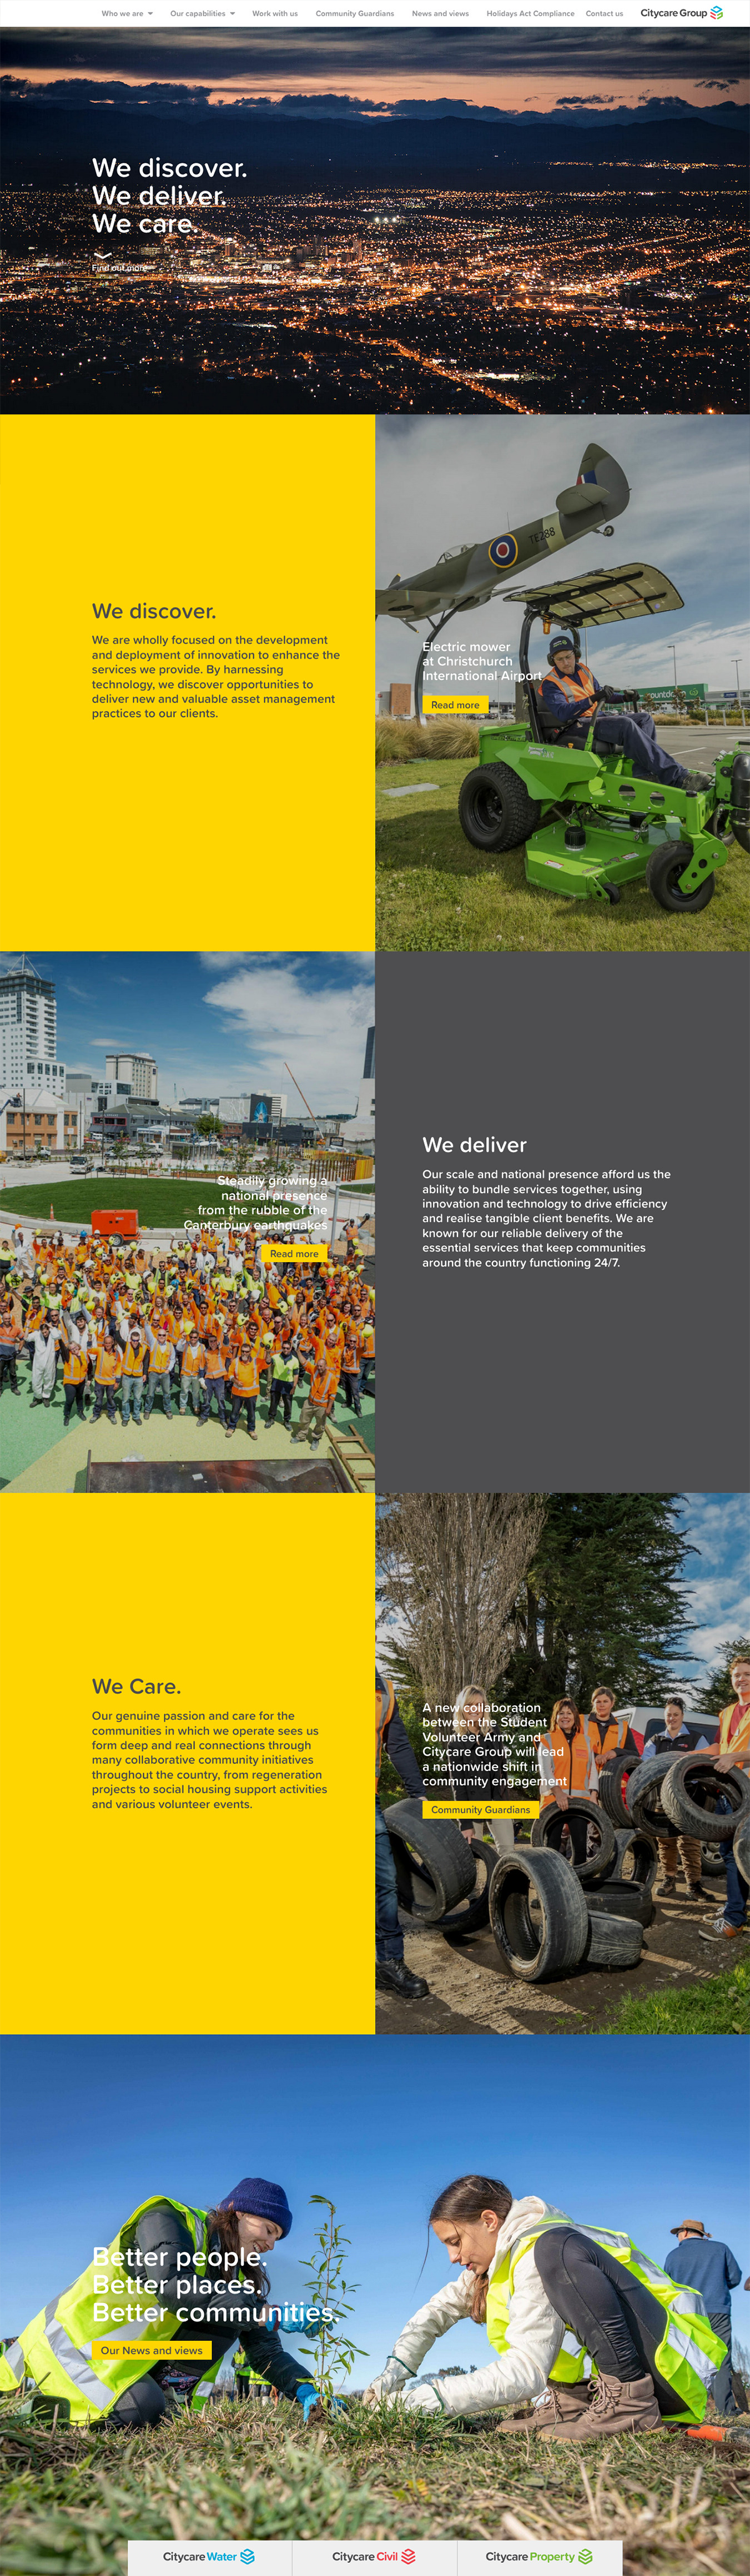 City Care Website Scroll Images 2020